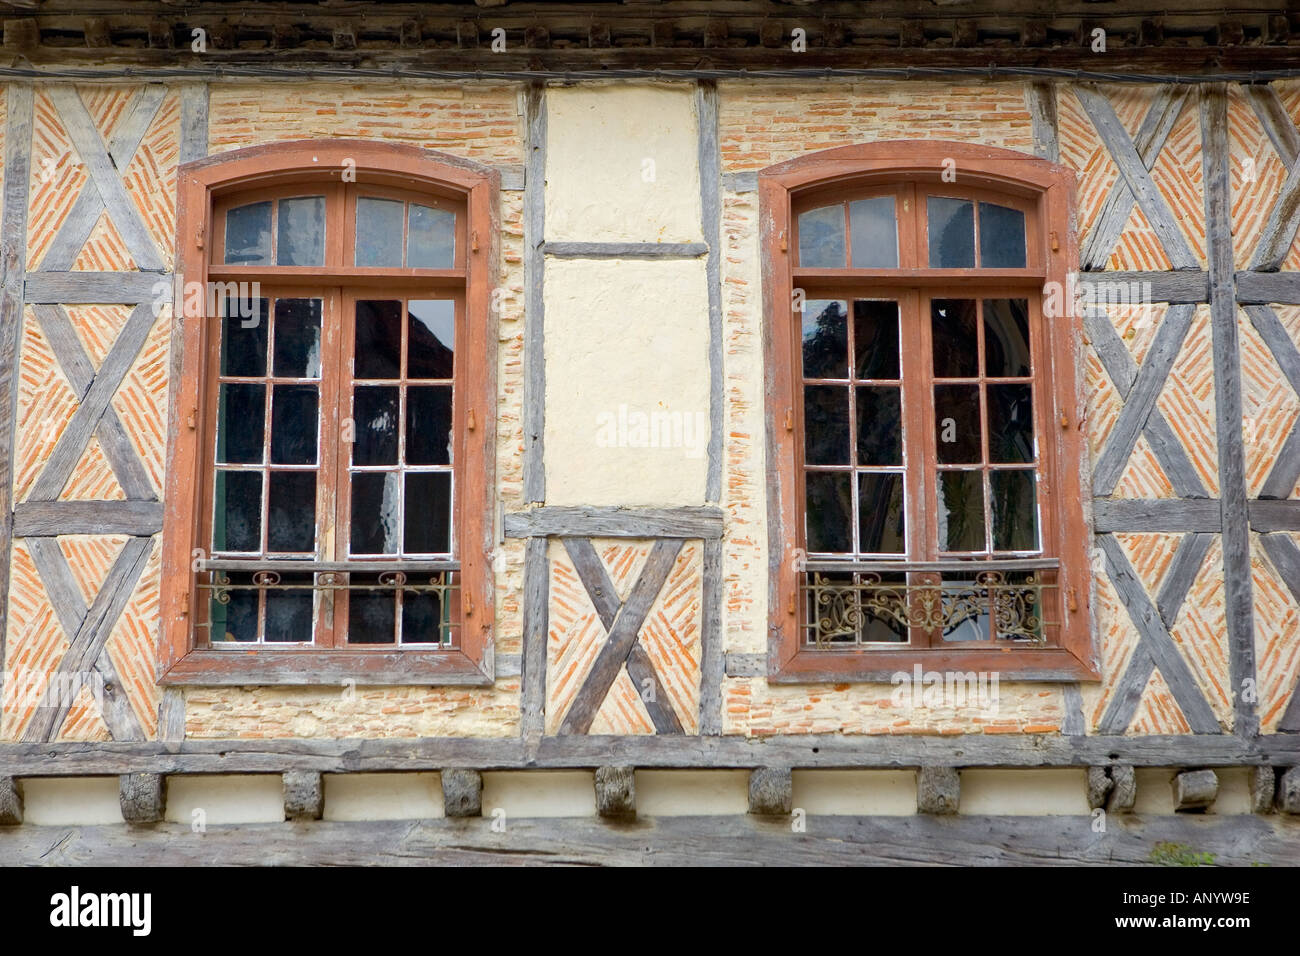 Windows Labastide d Armagnac France - Stock Image